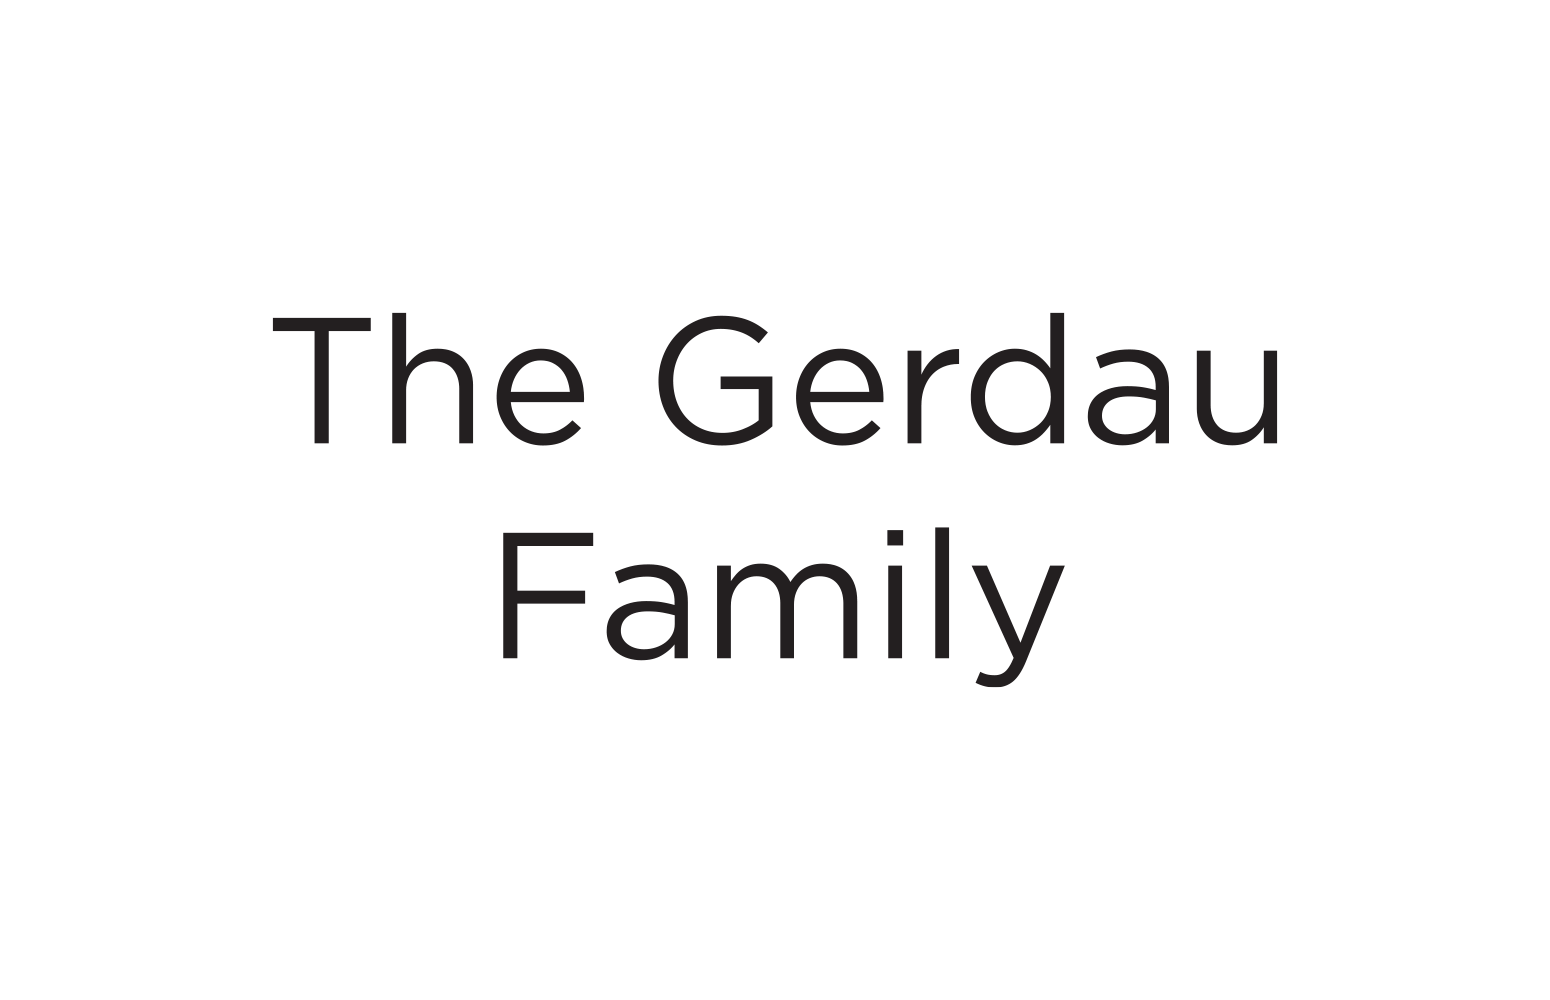 Gerdau Family, The